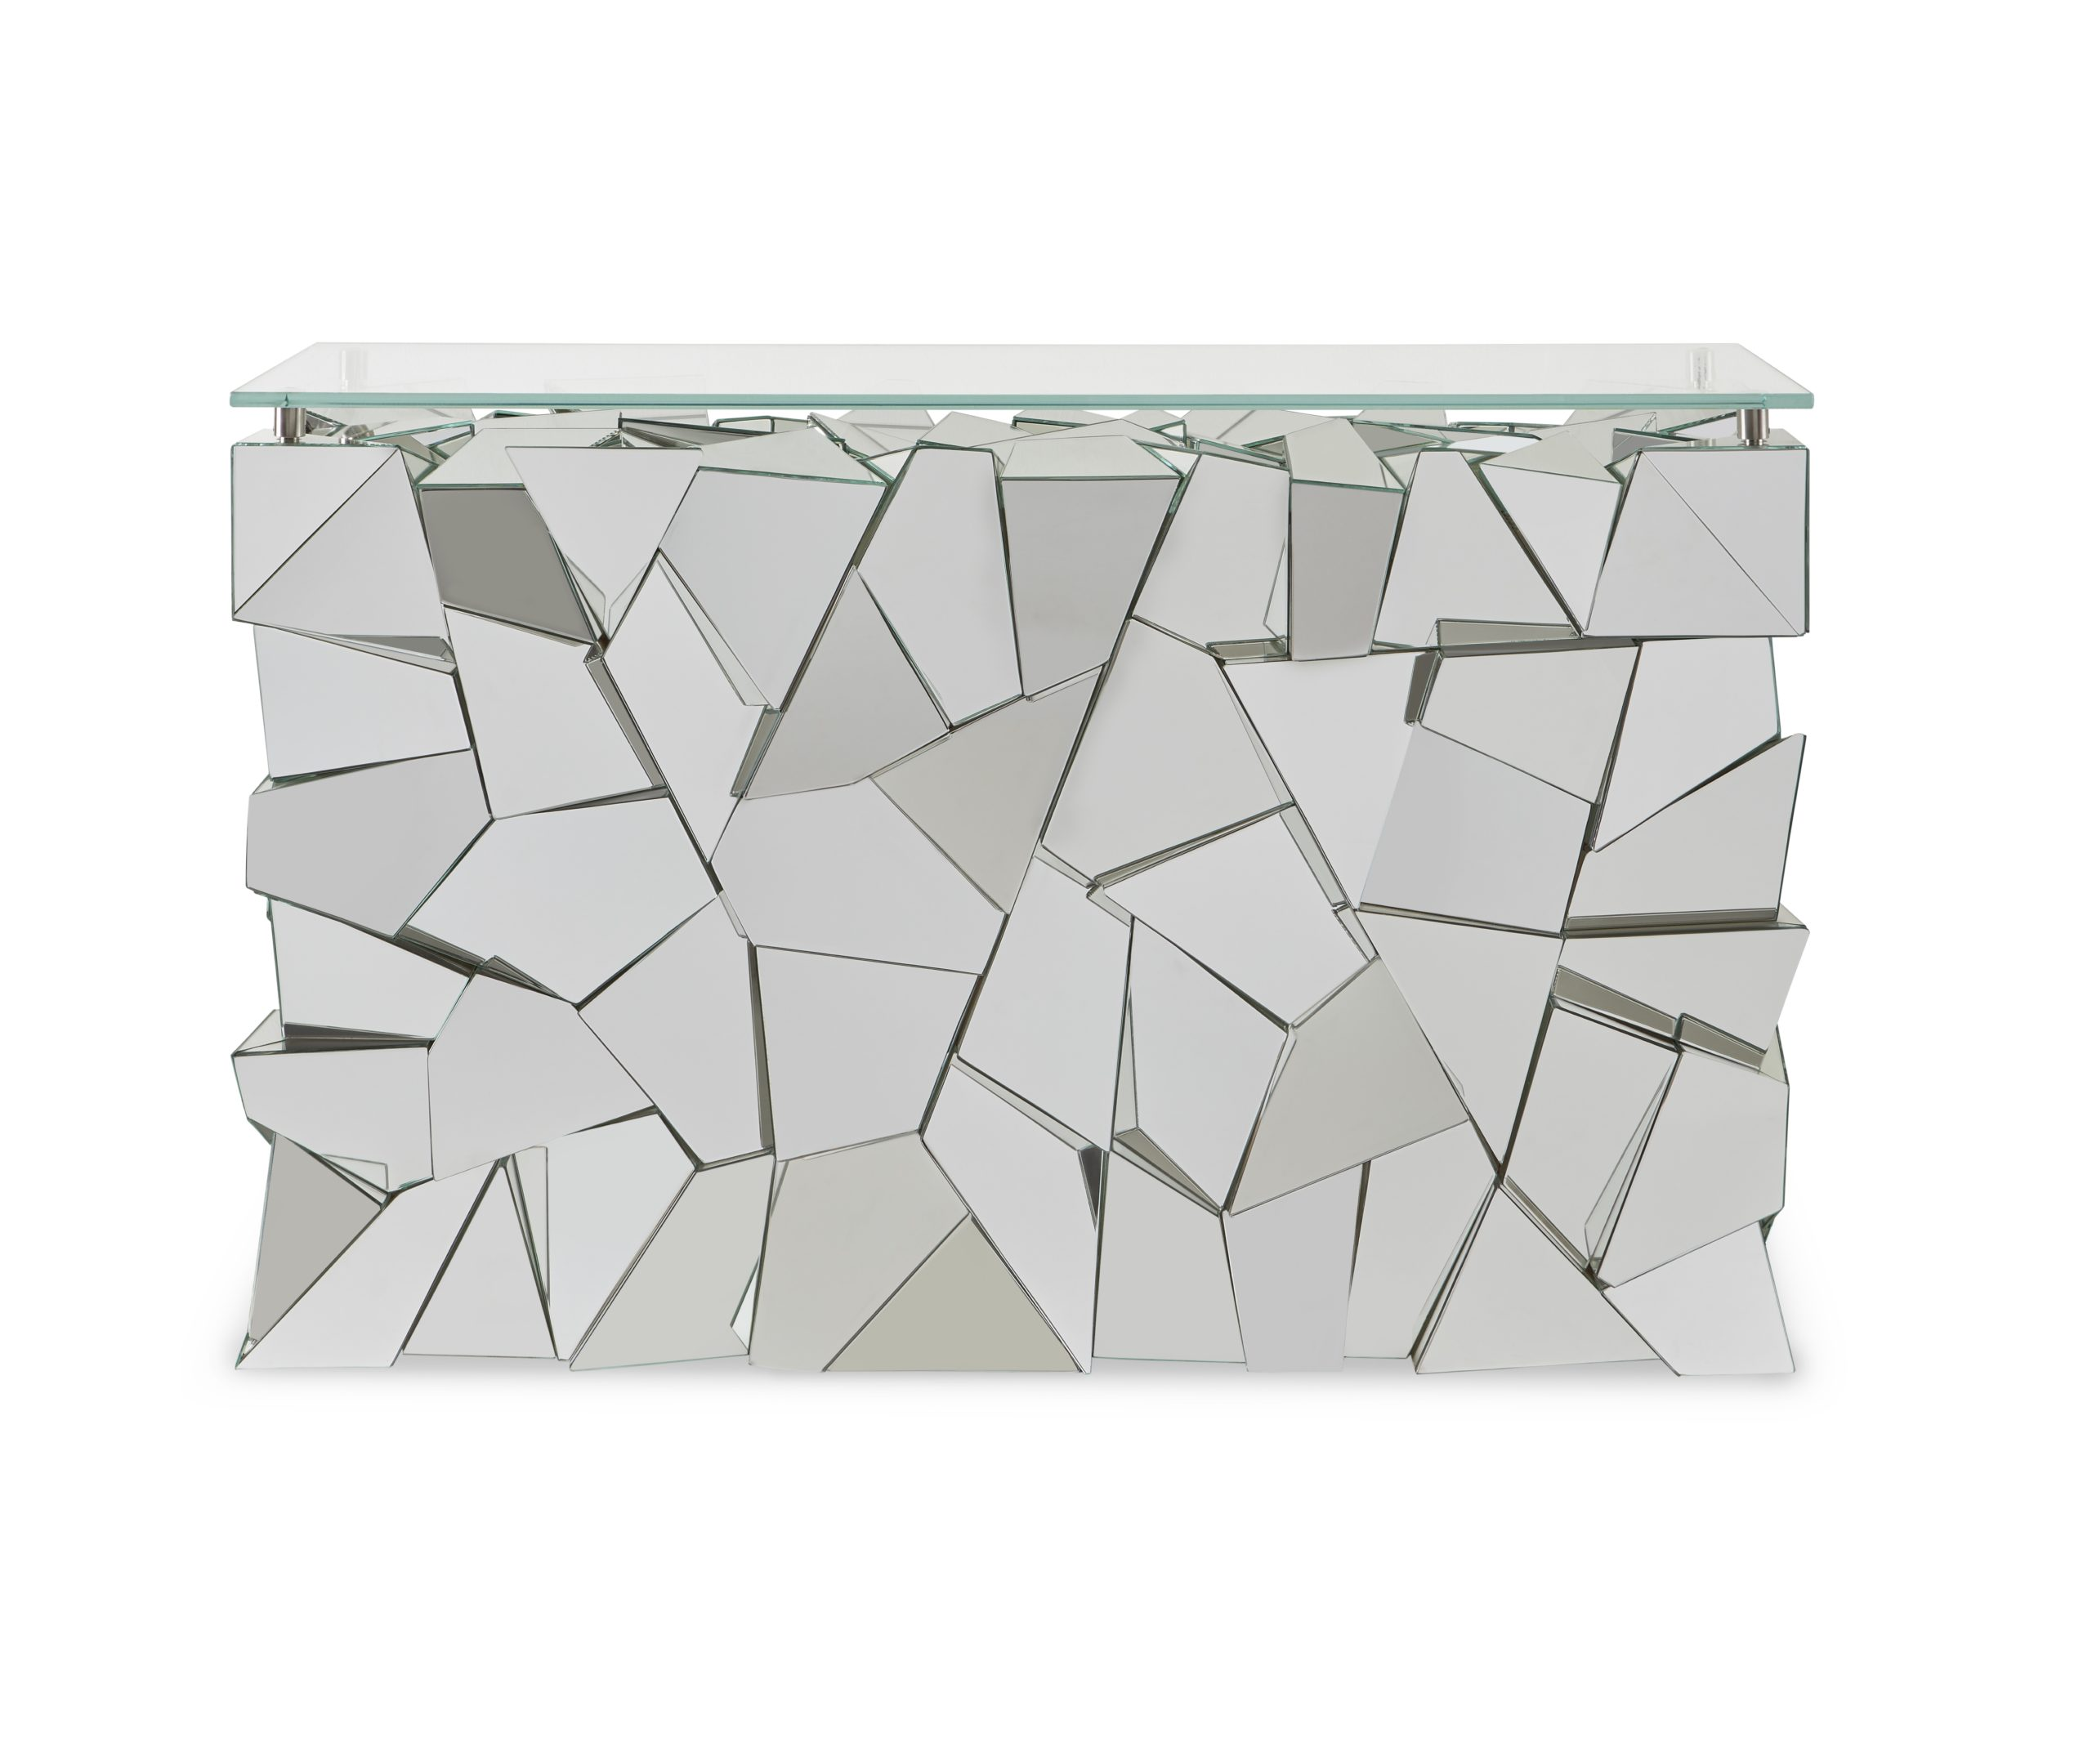 Baker_products_WNWN_reflection_console_BAA3266_FRONT-scaled-2